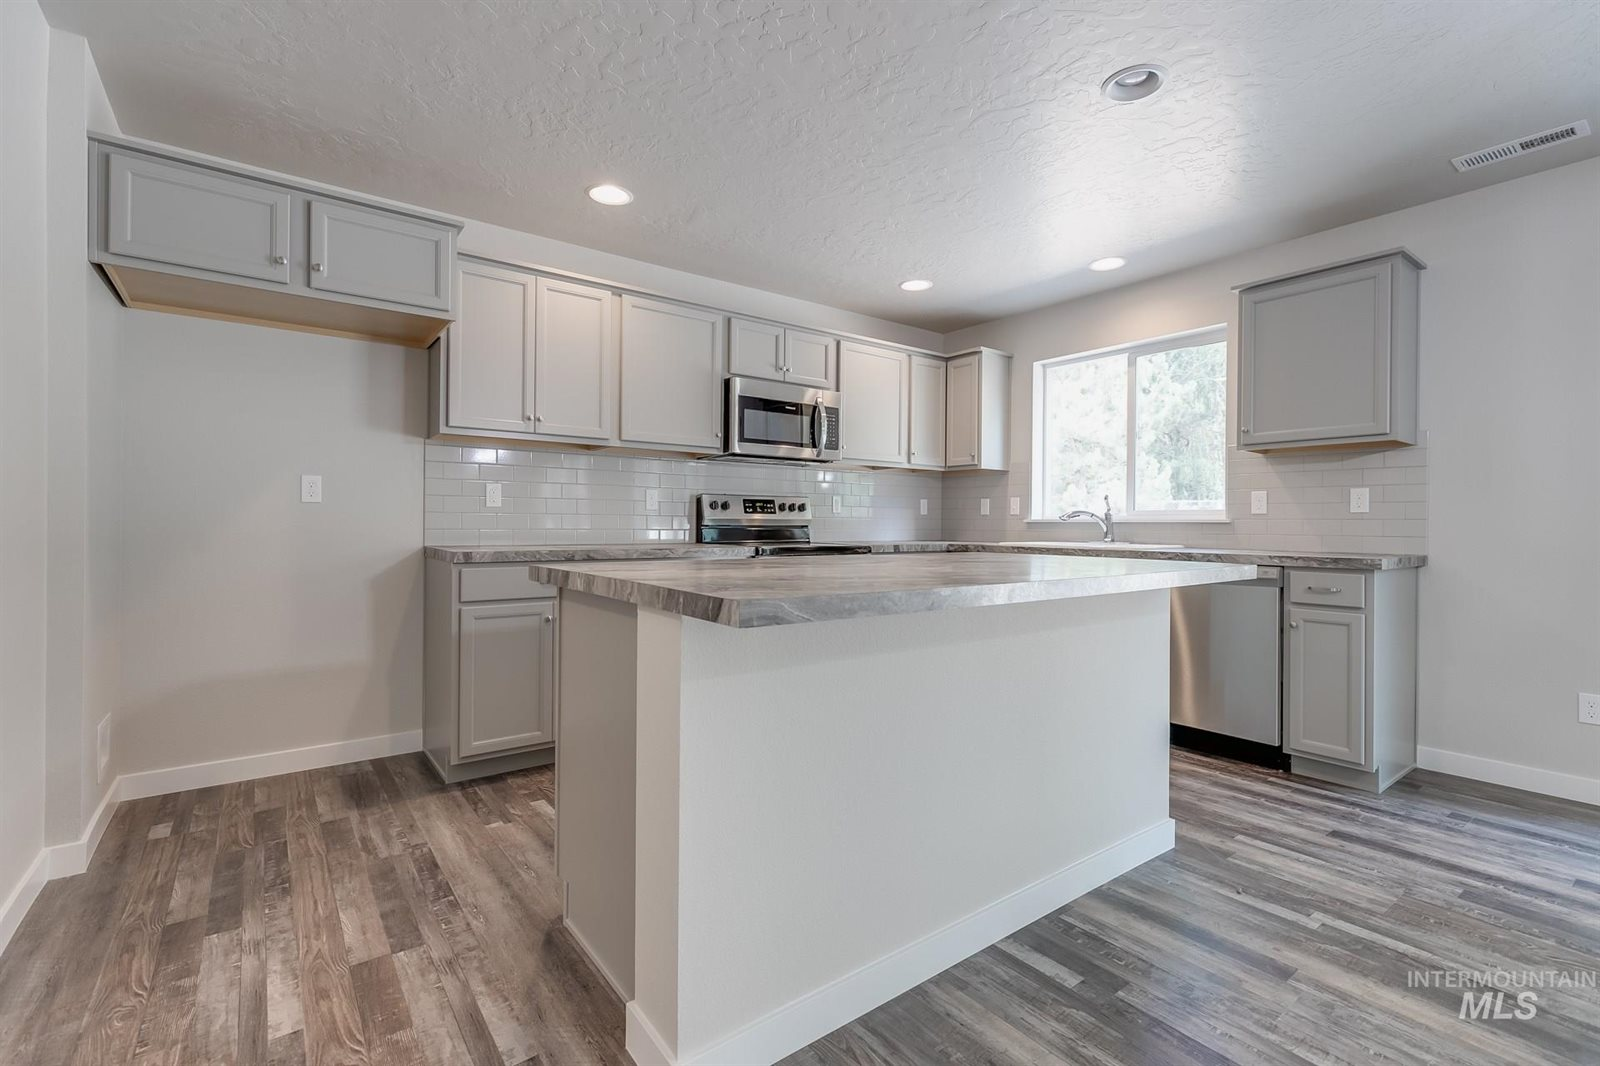 4379 West Sunny Cove St, Meridian, ID 83646